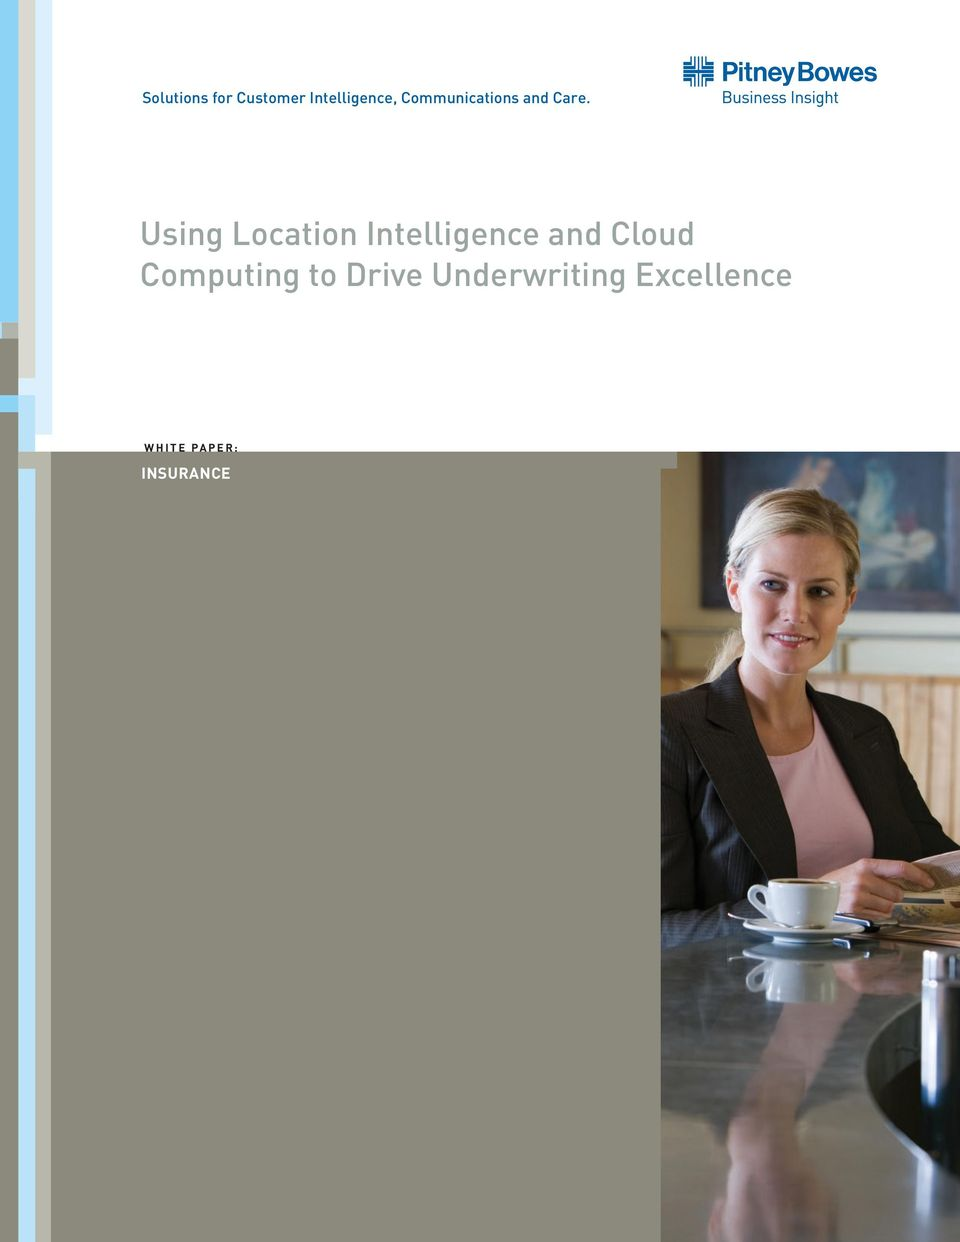 Using Location Intelligence and Cloud